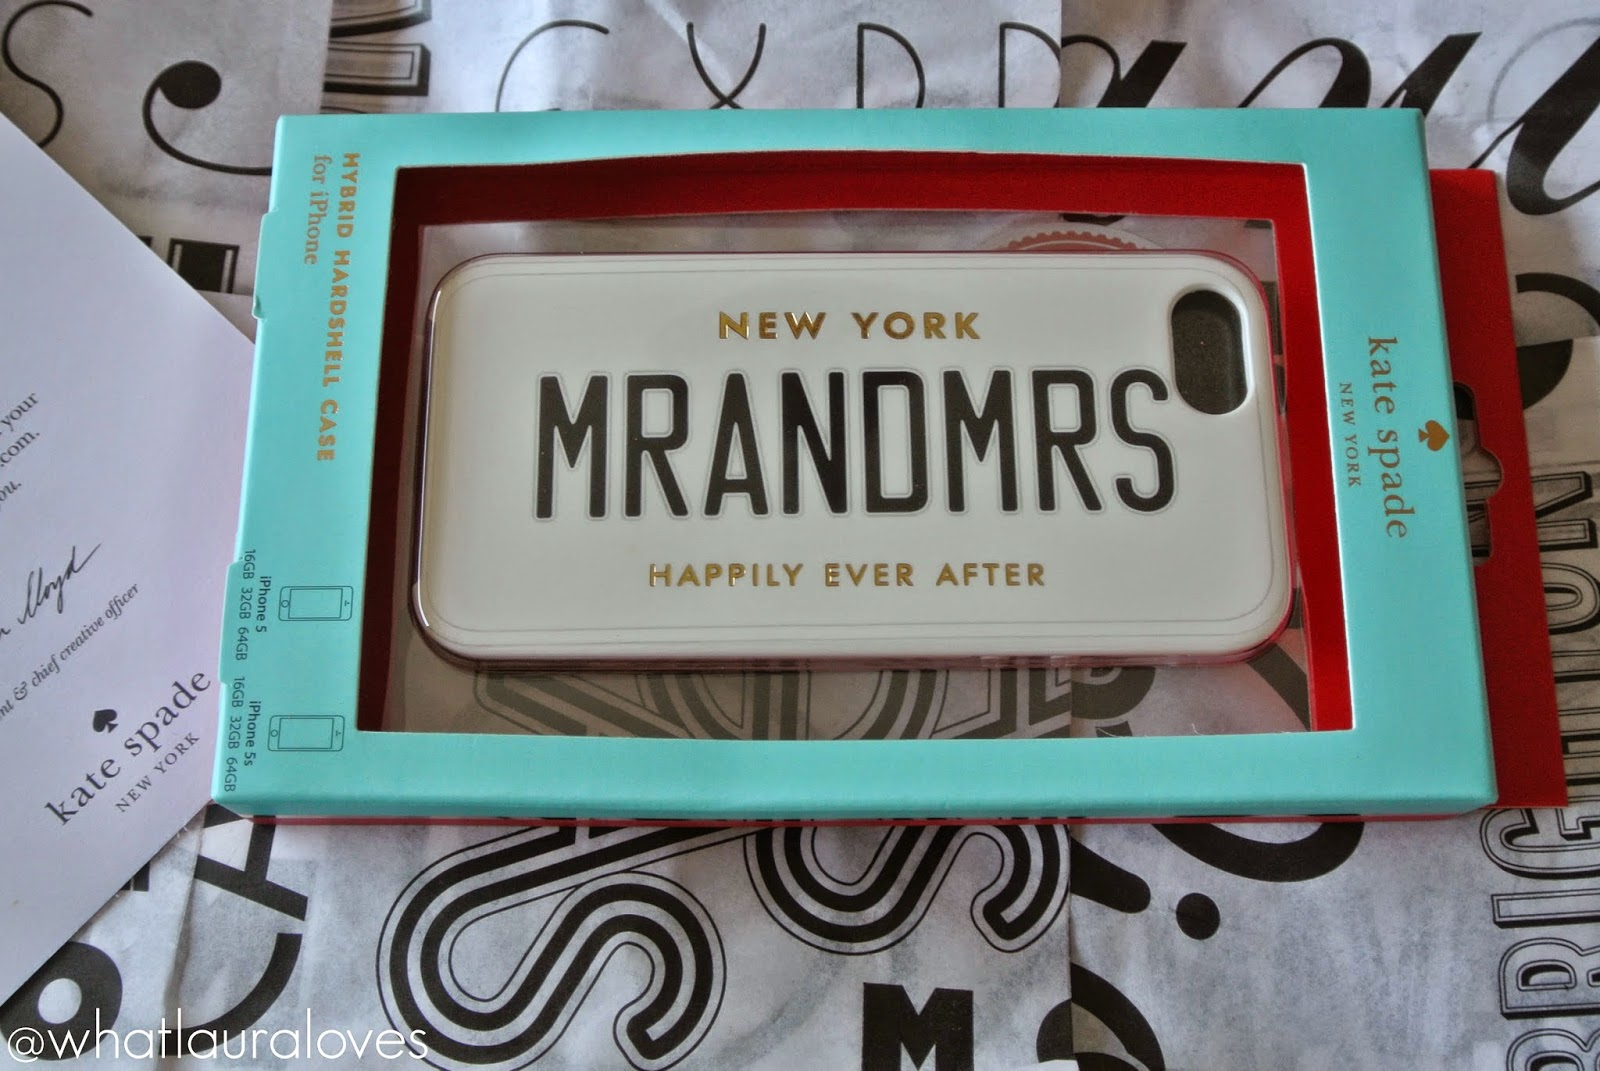 Kate Spade Happily Ever After Range MR AND MRS PHONE CASE